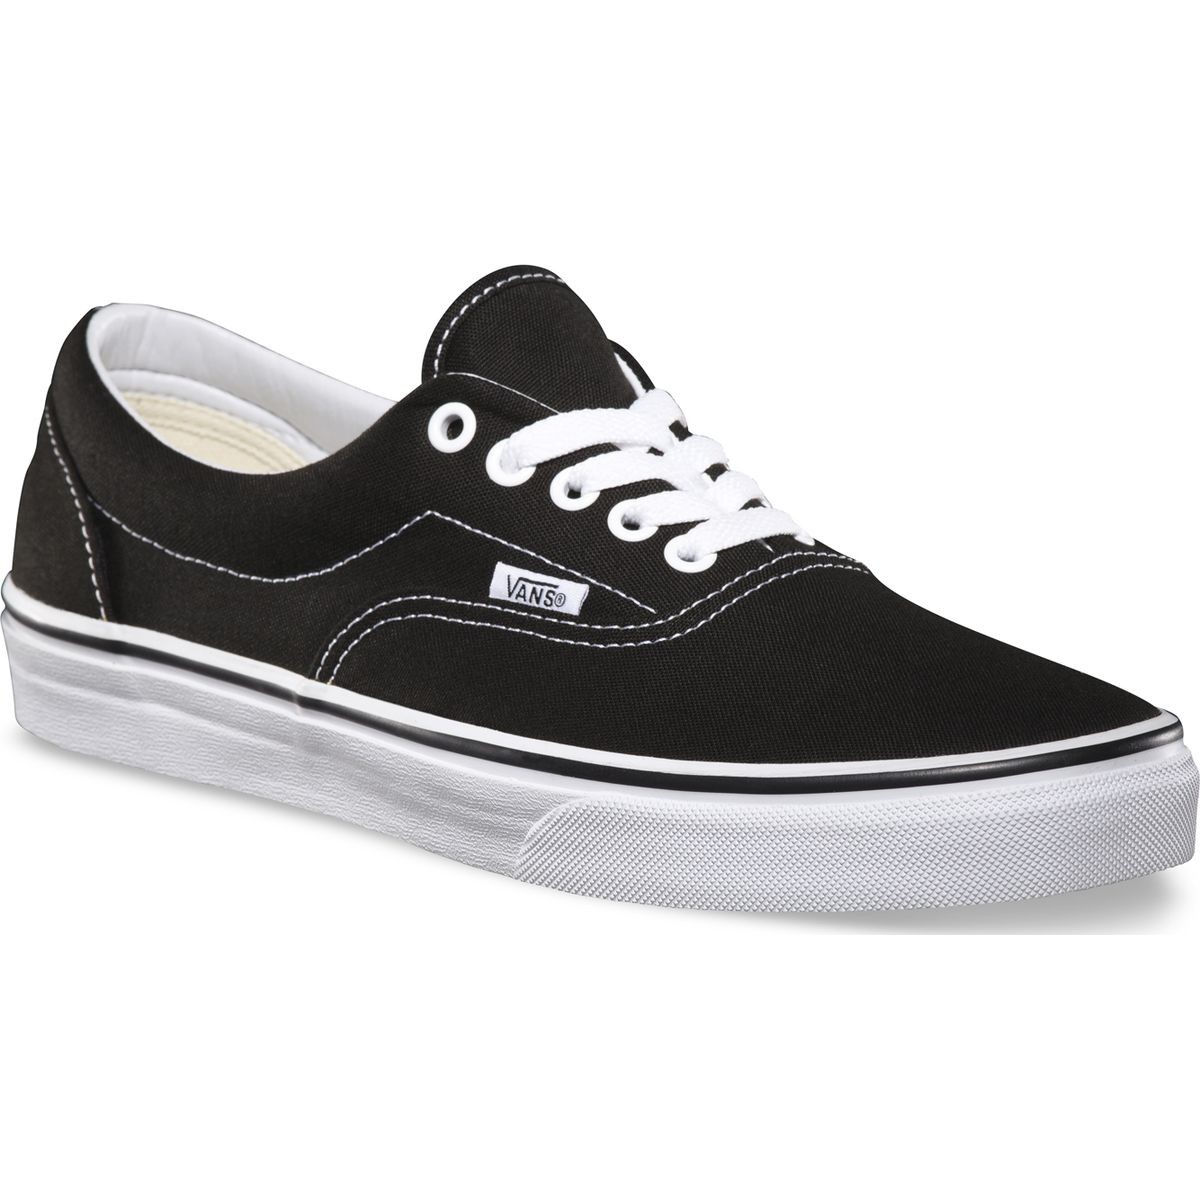 Vans Era Shoes - Black